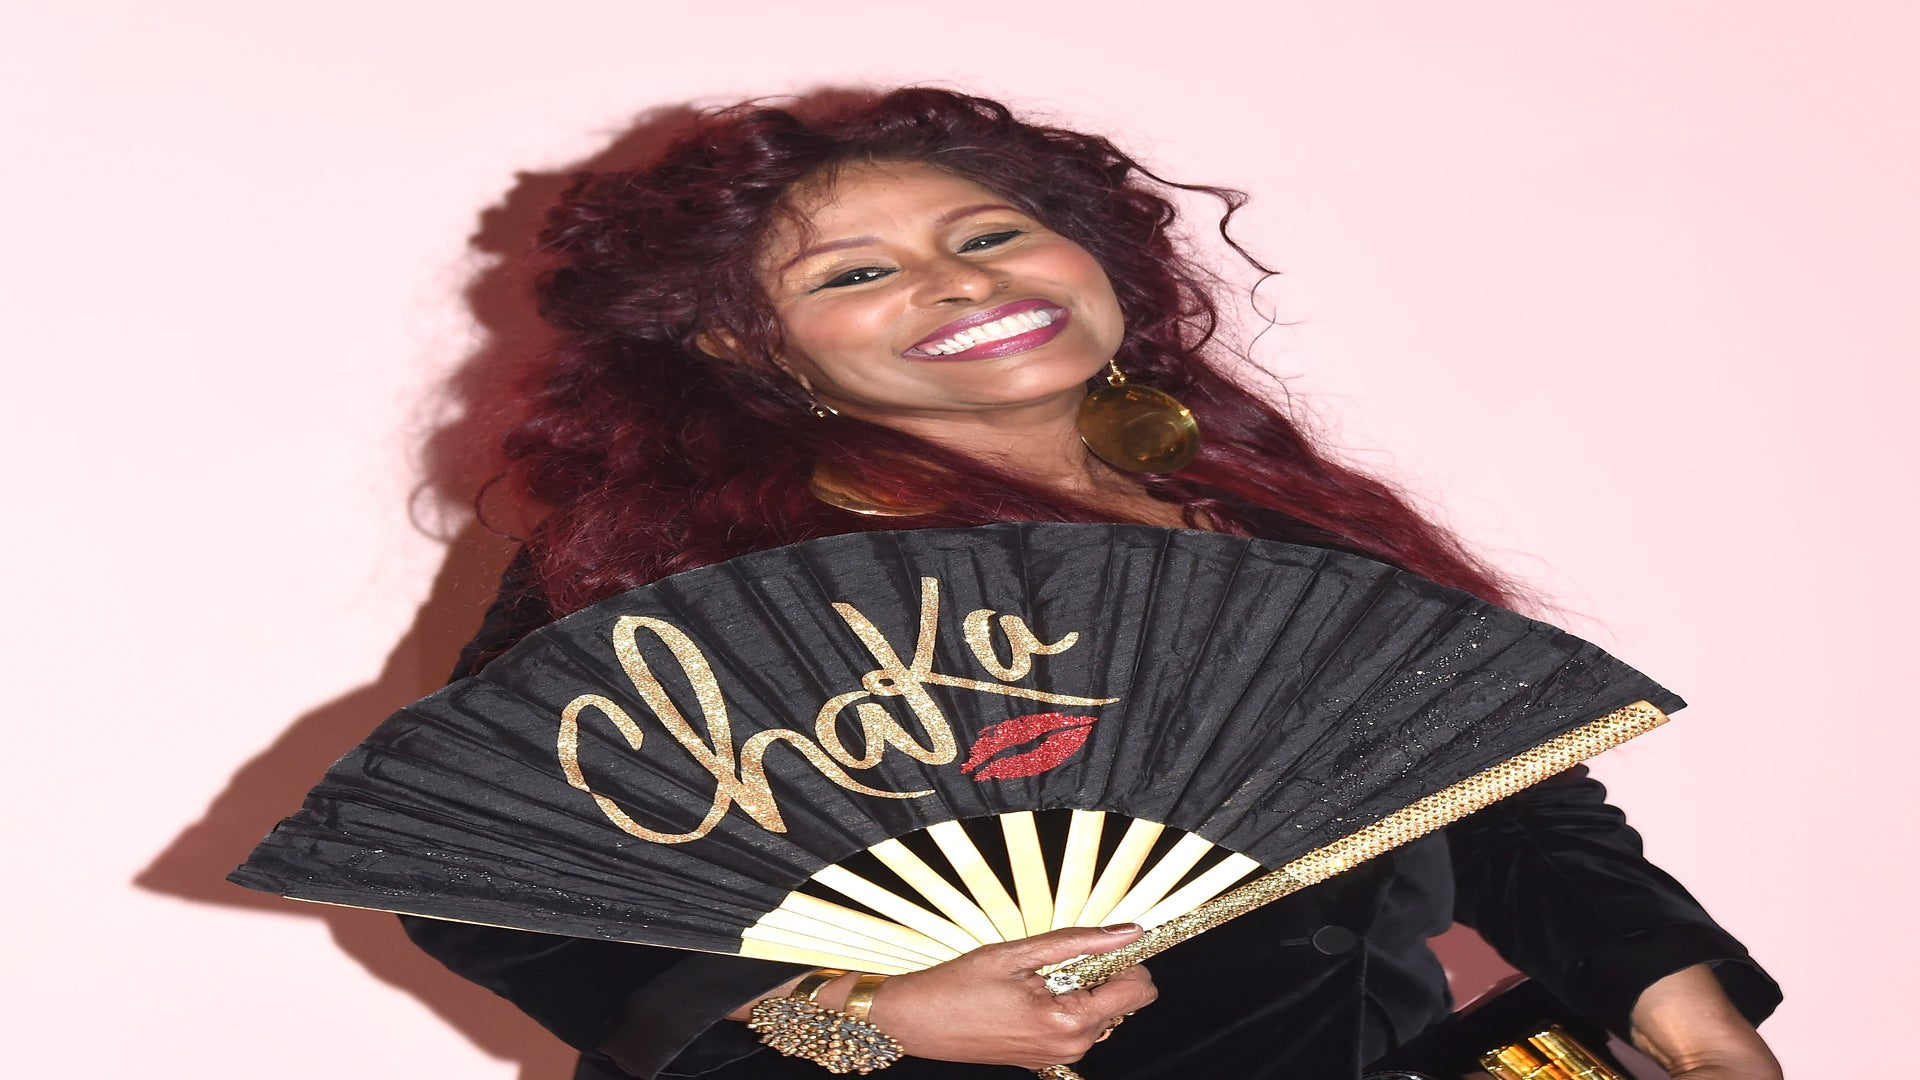 Chaka Khan Just Spilled All of Her Iconic Makeup Secrets in a Video, and We Can't Stop Watching